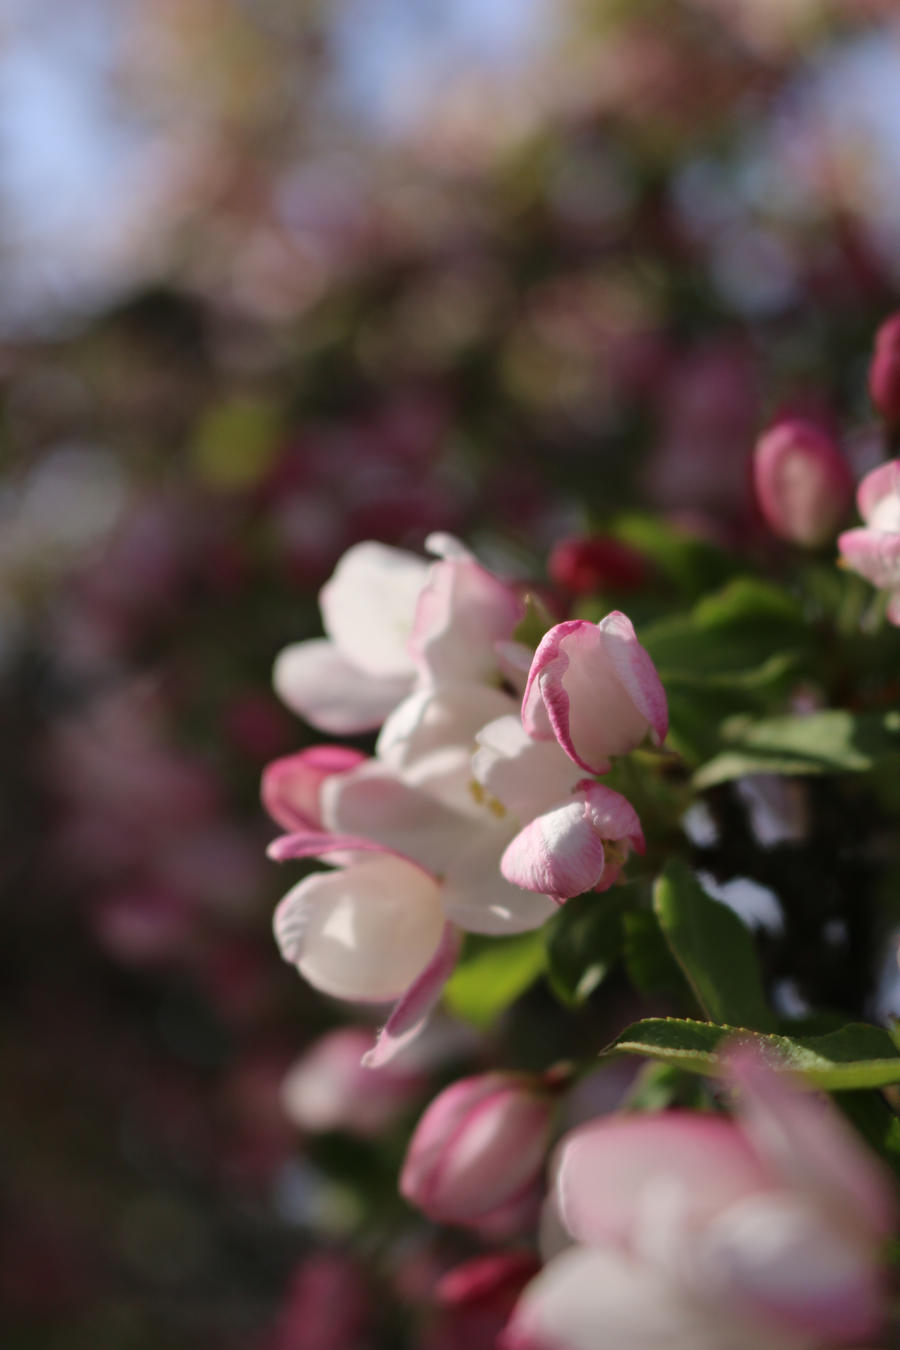 Pink lips on a white bud by Meagharan